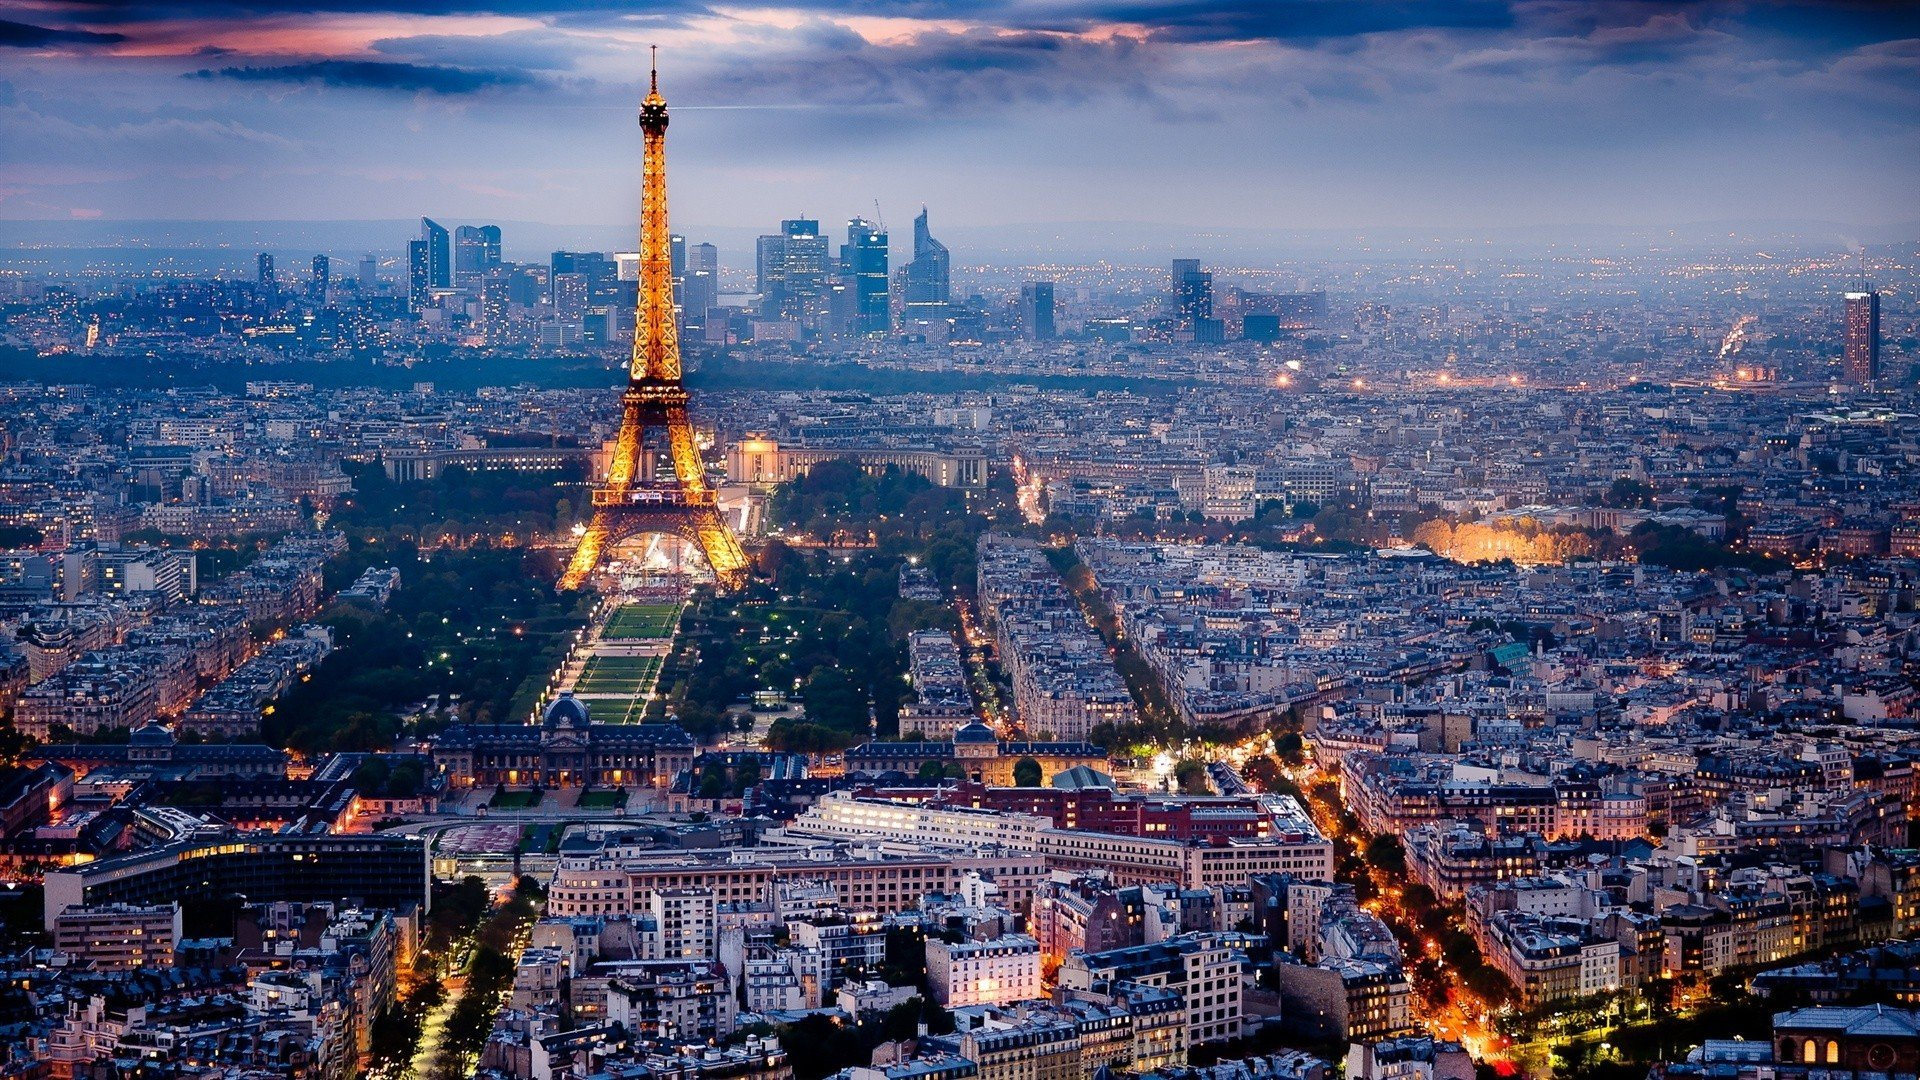 France Paris Eiffel Tower City Cityscape Hd Wallpapers Desktop And Mobile Images Photos